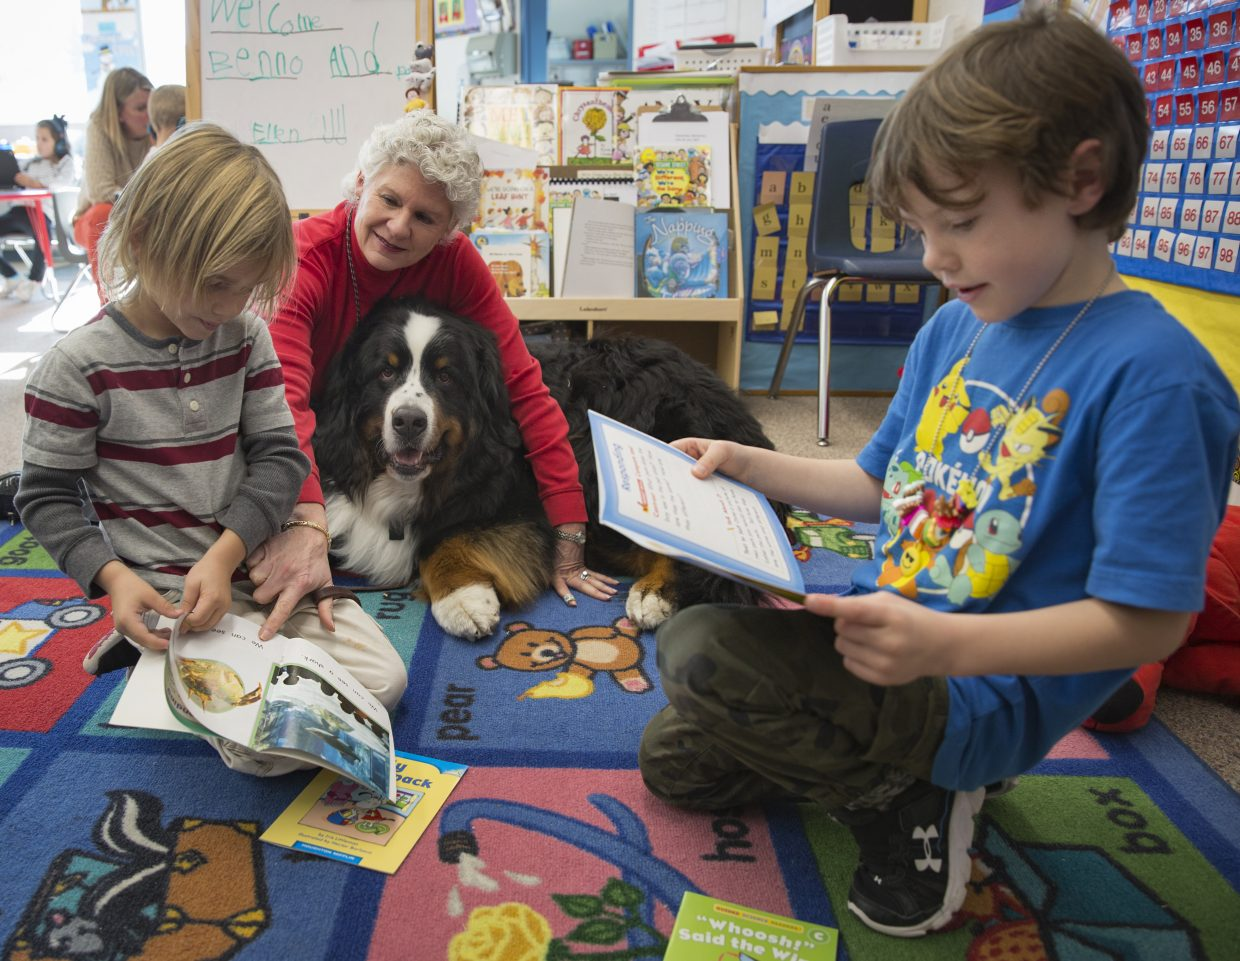 Stryder Marzka, left, and Henry Metcalfe, right, read books to Benno, a five-year-old Bernese Mountain therapy dog, during class time at Trailside Elementary on Thursday, November 30, 2017. Benno and his owner Ellen Folke, both with Intermountain Therapy Animals, visited the class to help the students practice their reading skills. (Tanzi Propst/Park Record)